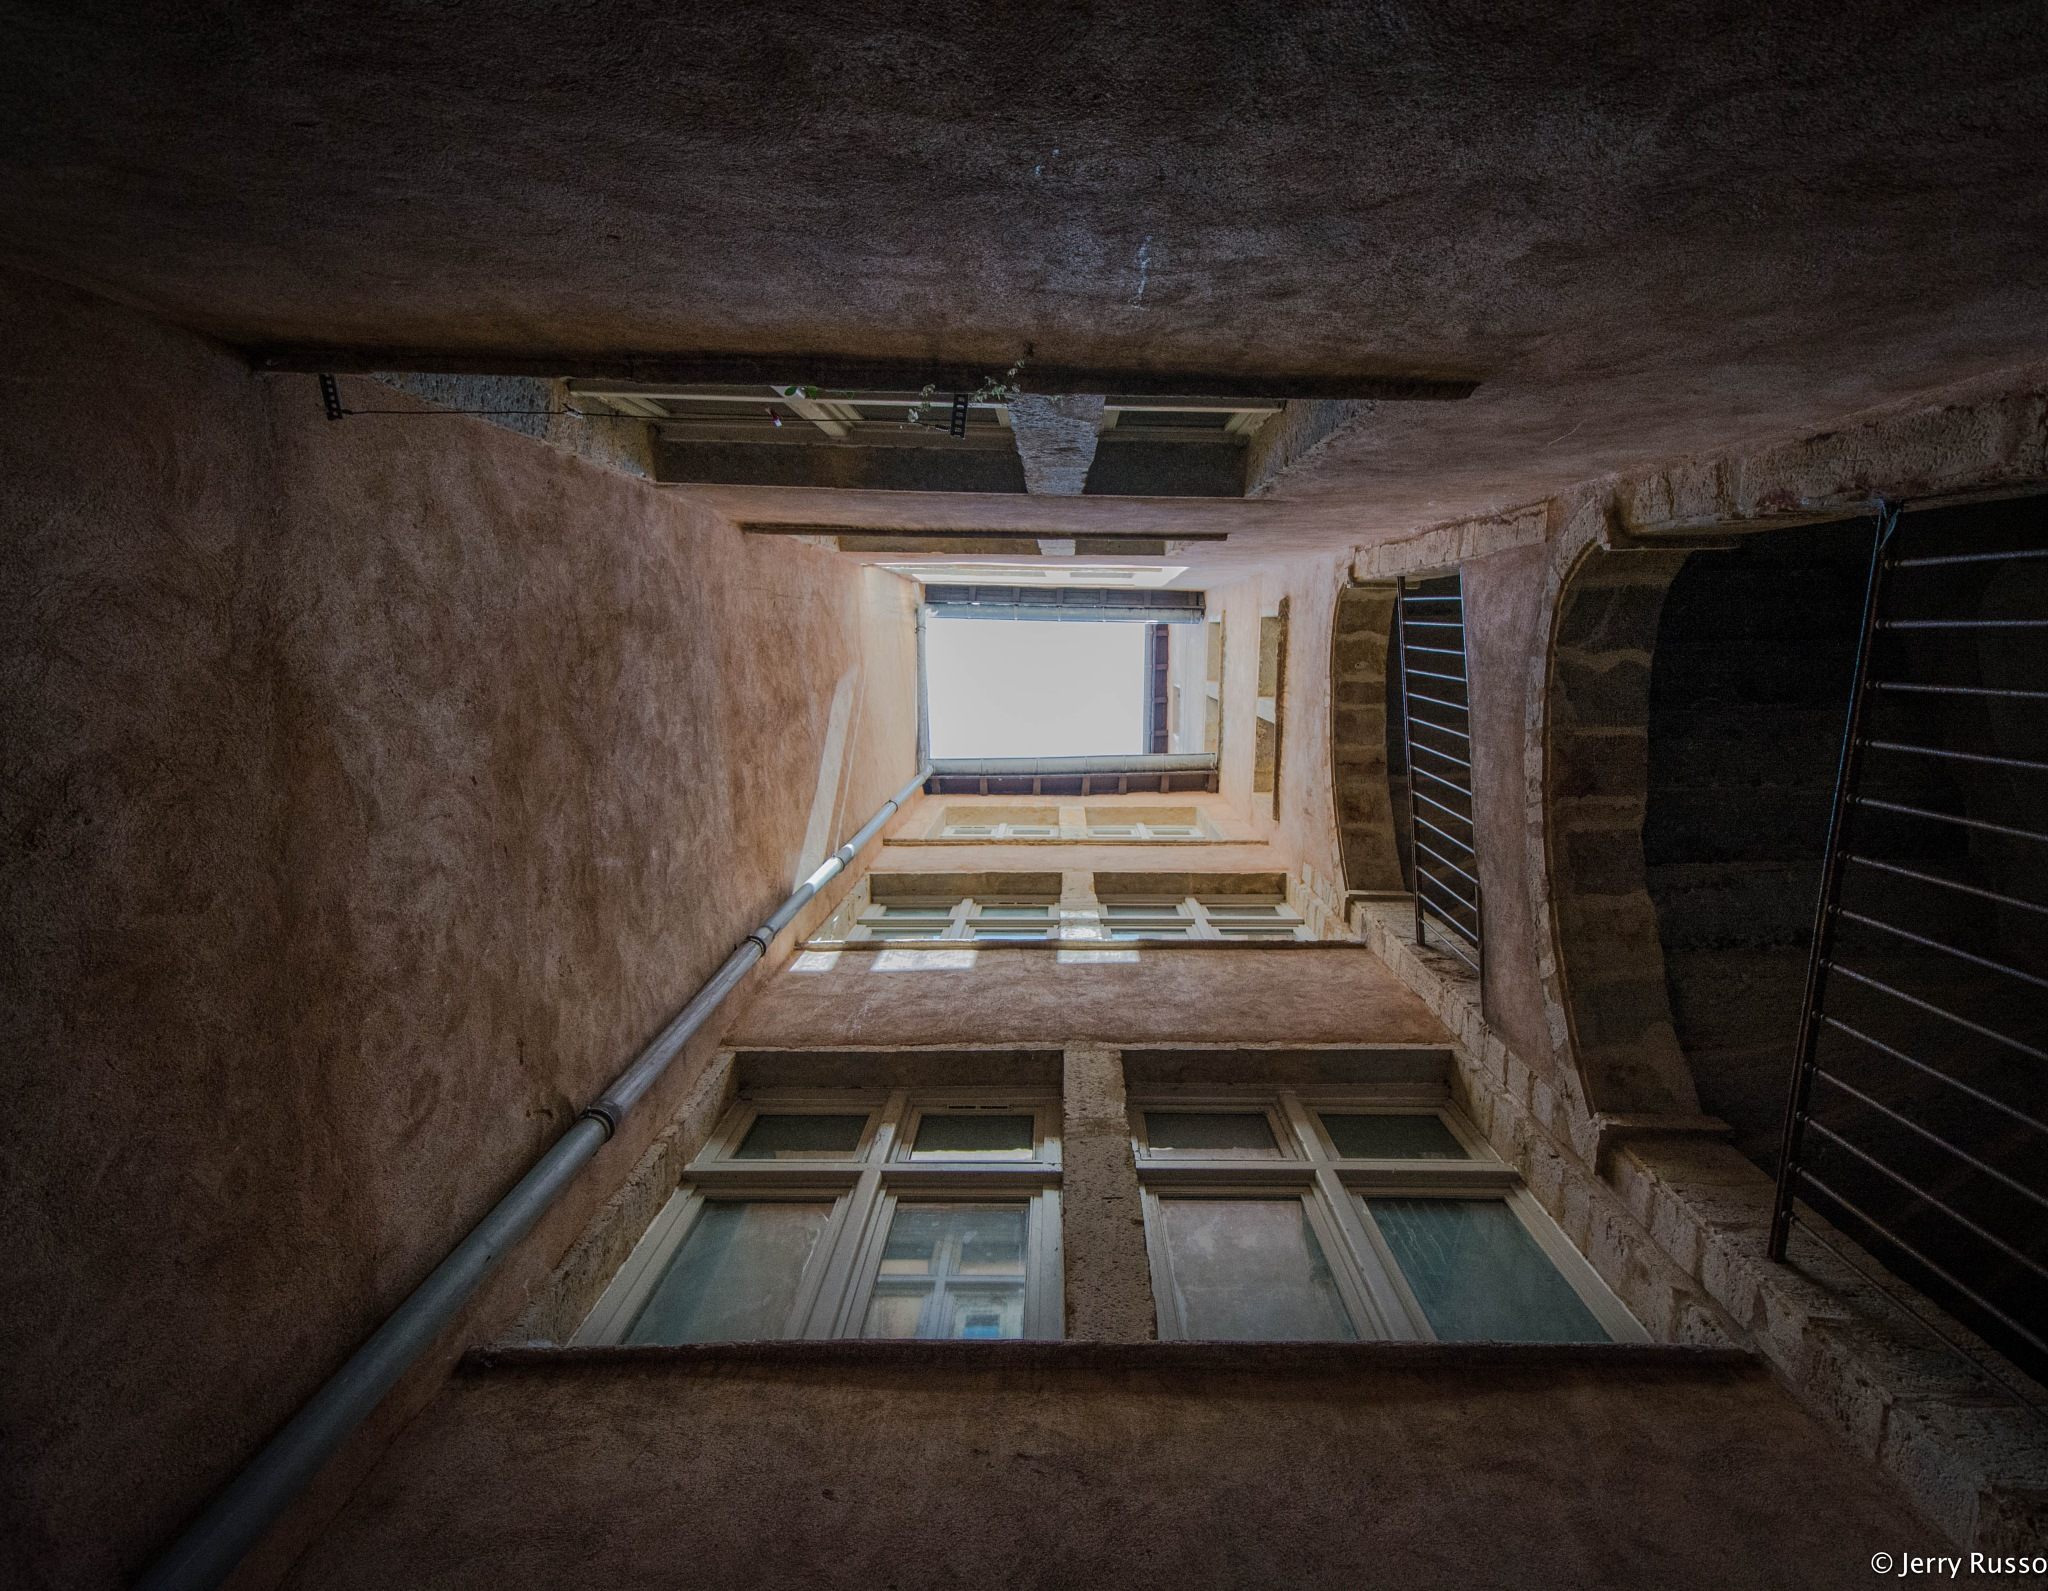 Traboule Lyon by Jerry Russo